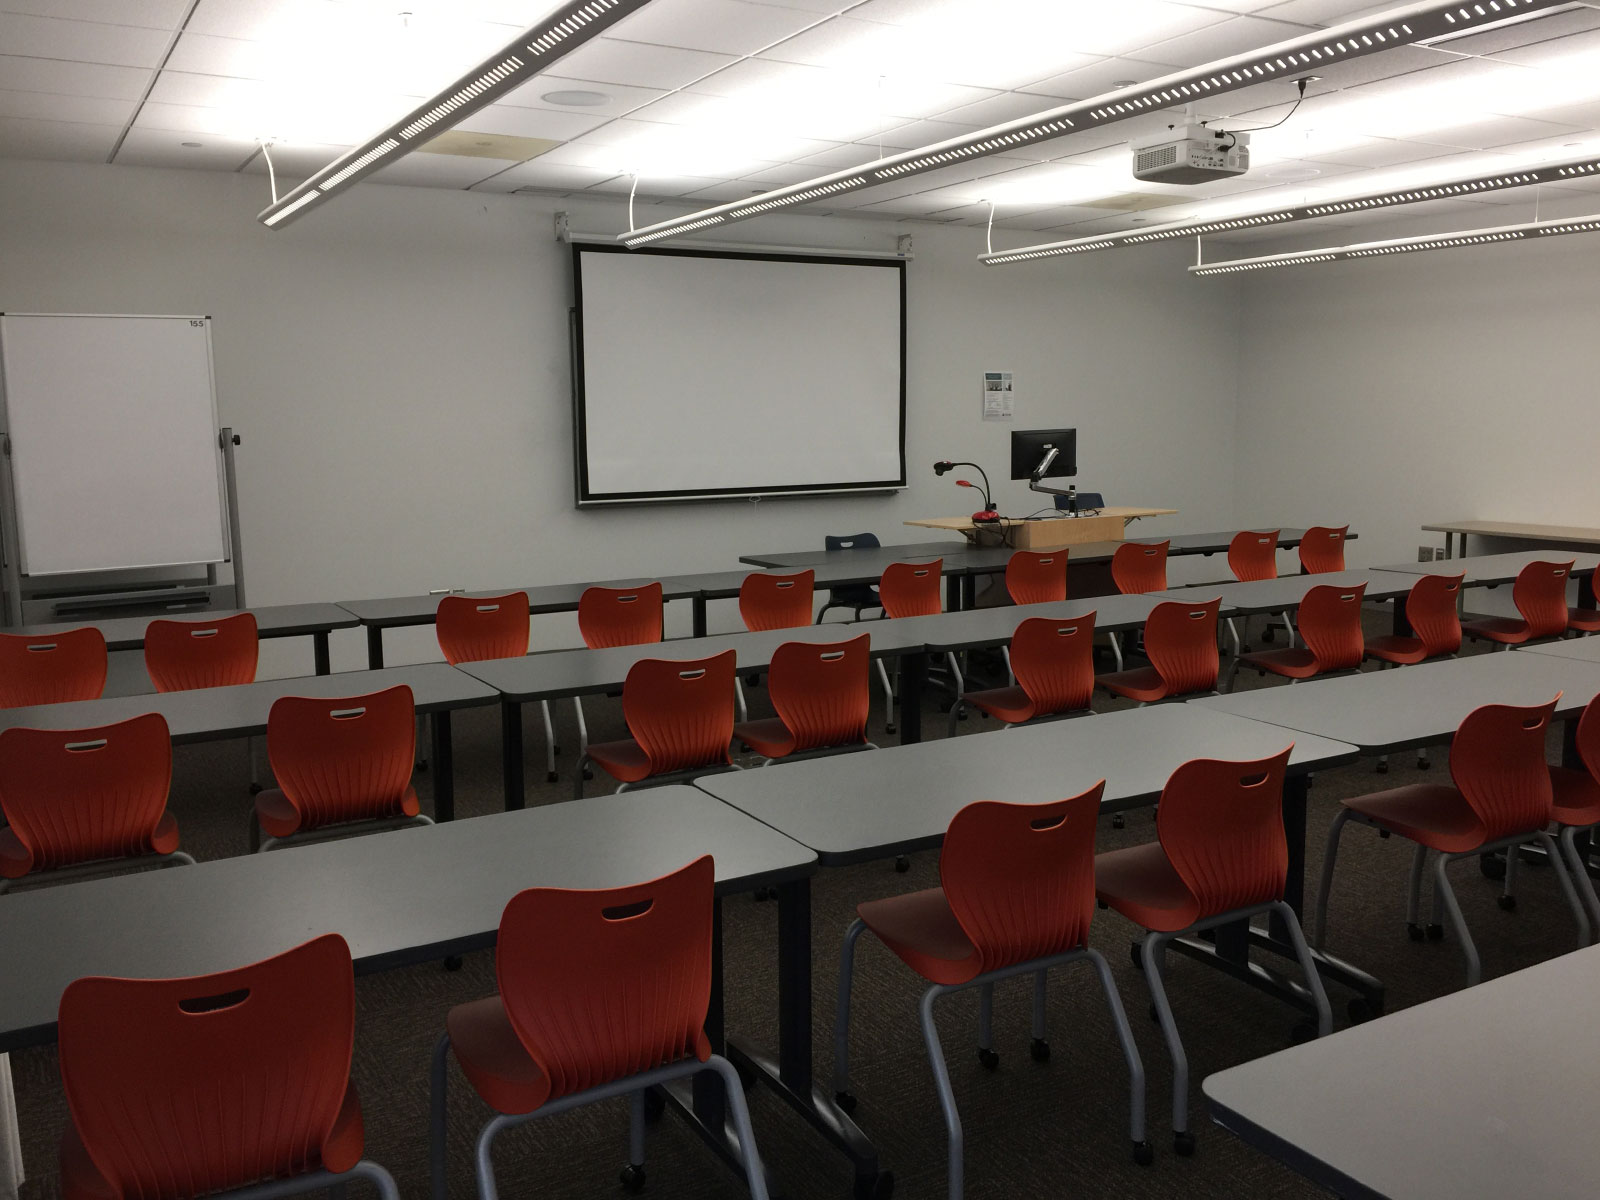 Rows of orange chairs and tables in front of a podium and projector in classroom W155 on the WIlsonville campus